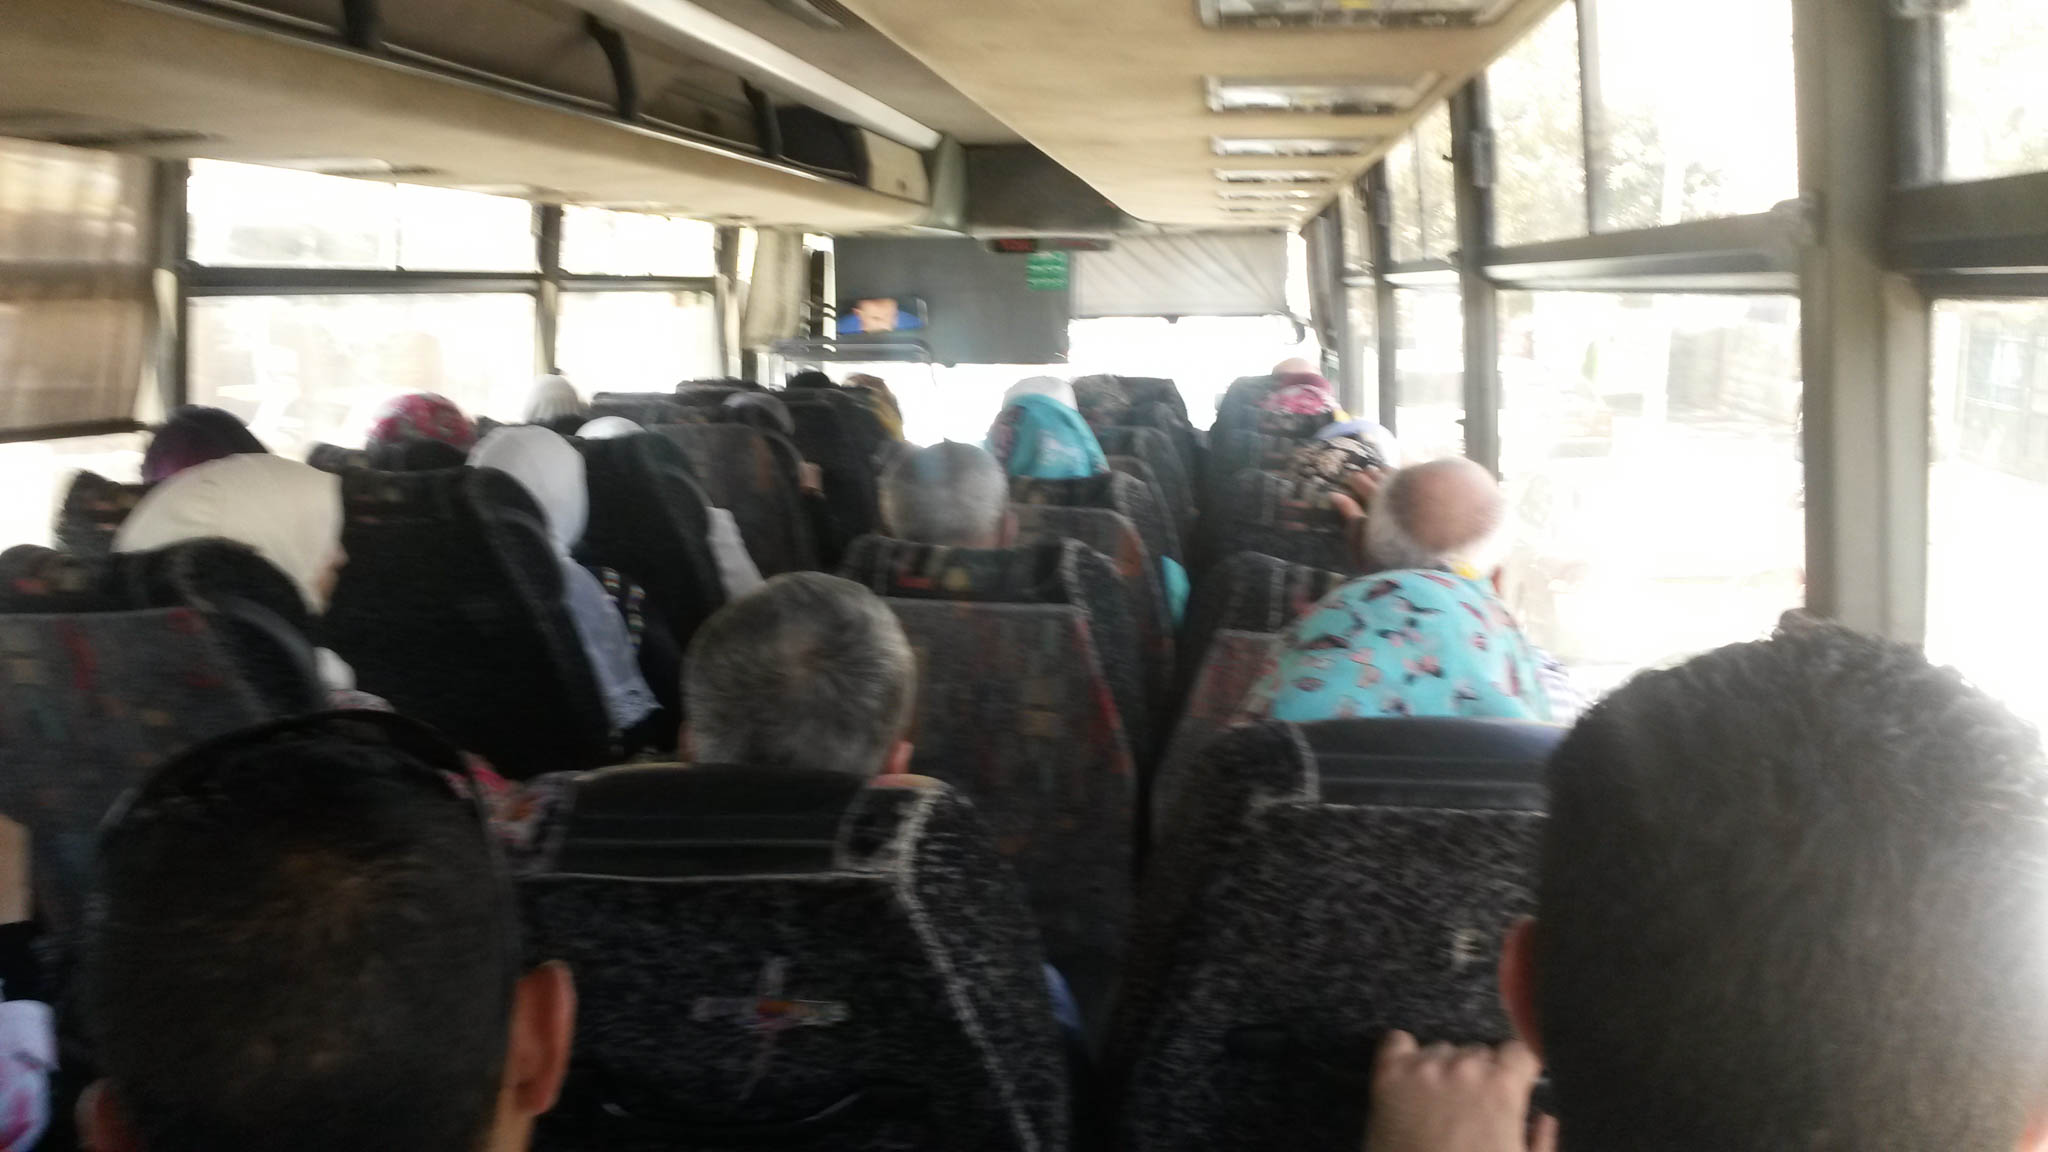 Bus Number 219 to Ramallah